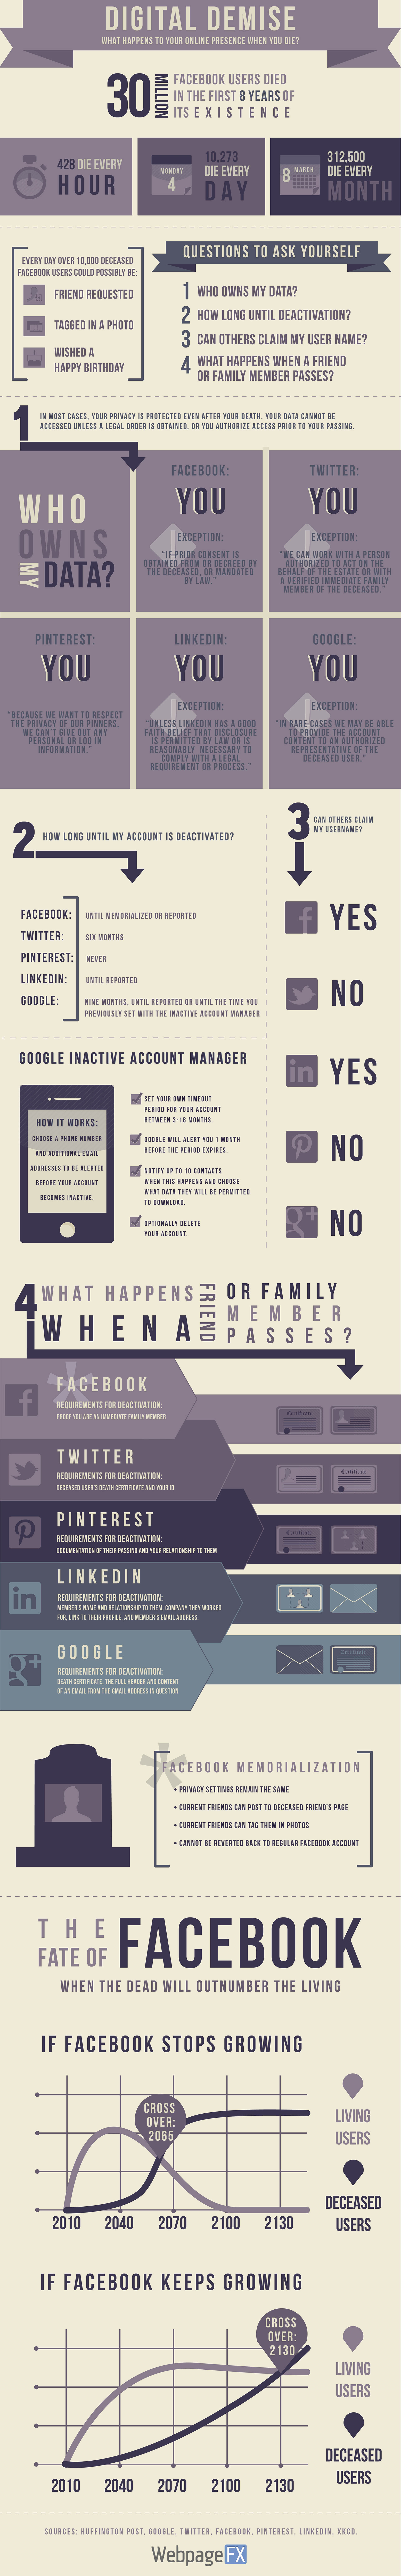 Please check for the latest term and conditions from your social media accounts.